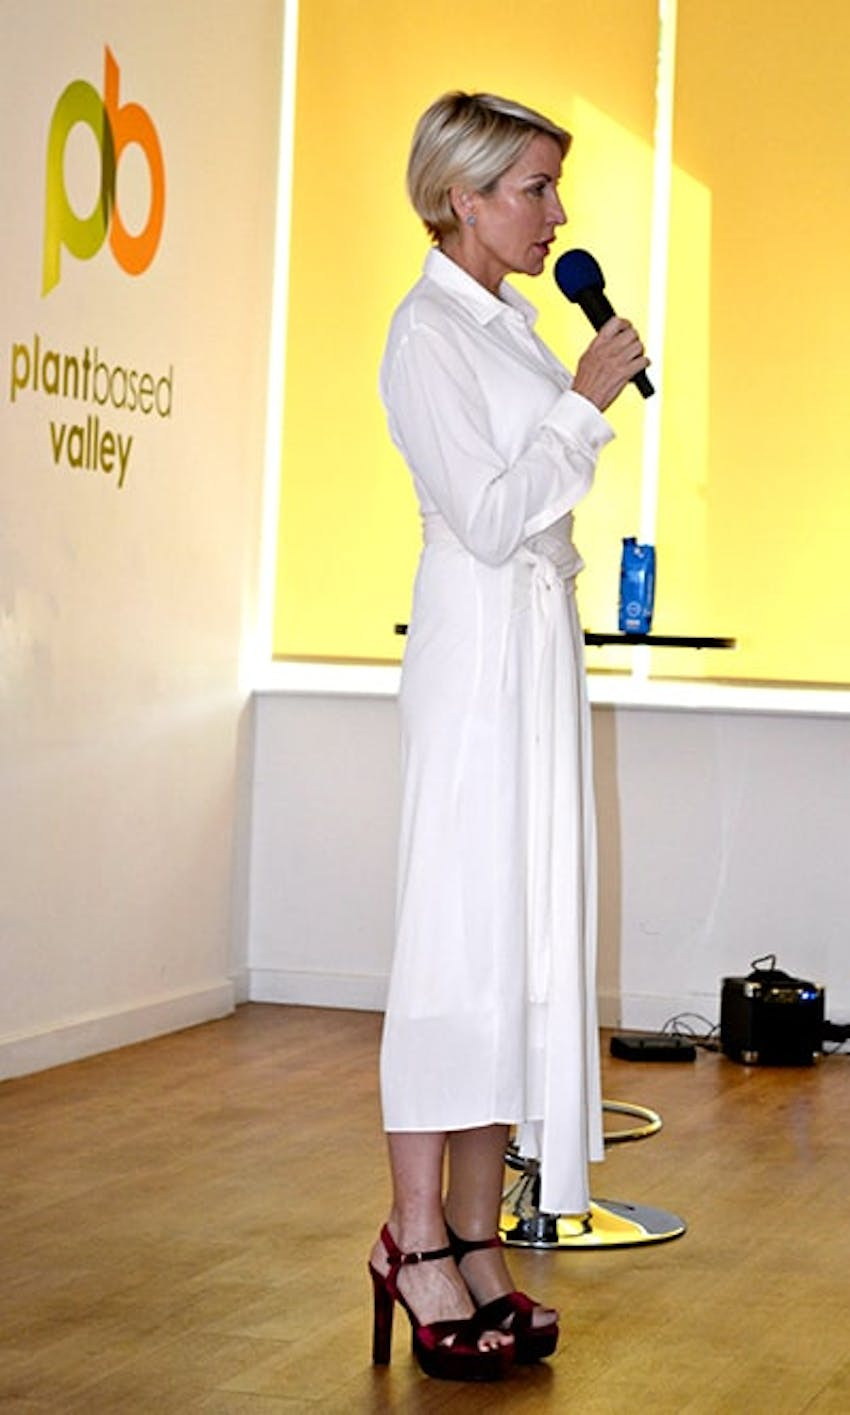 Heather mills speaking into microphone at the launch event of plant based valley dressed in white